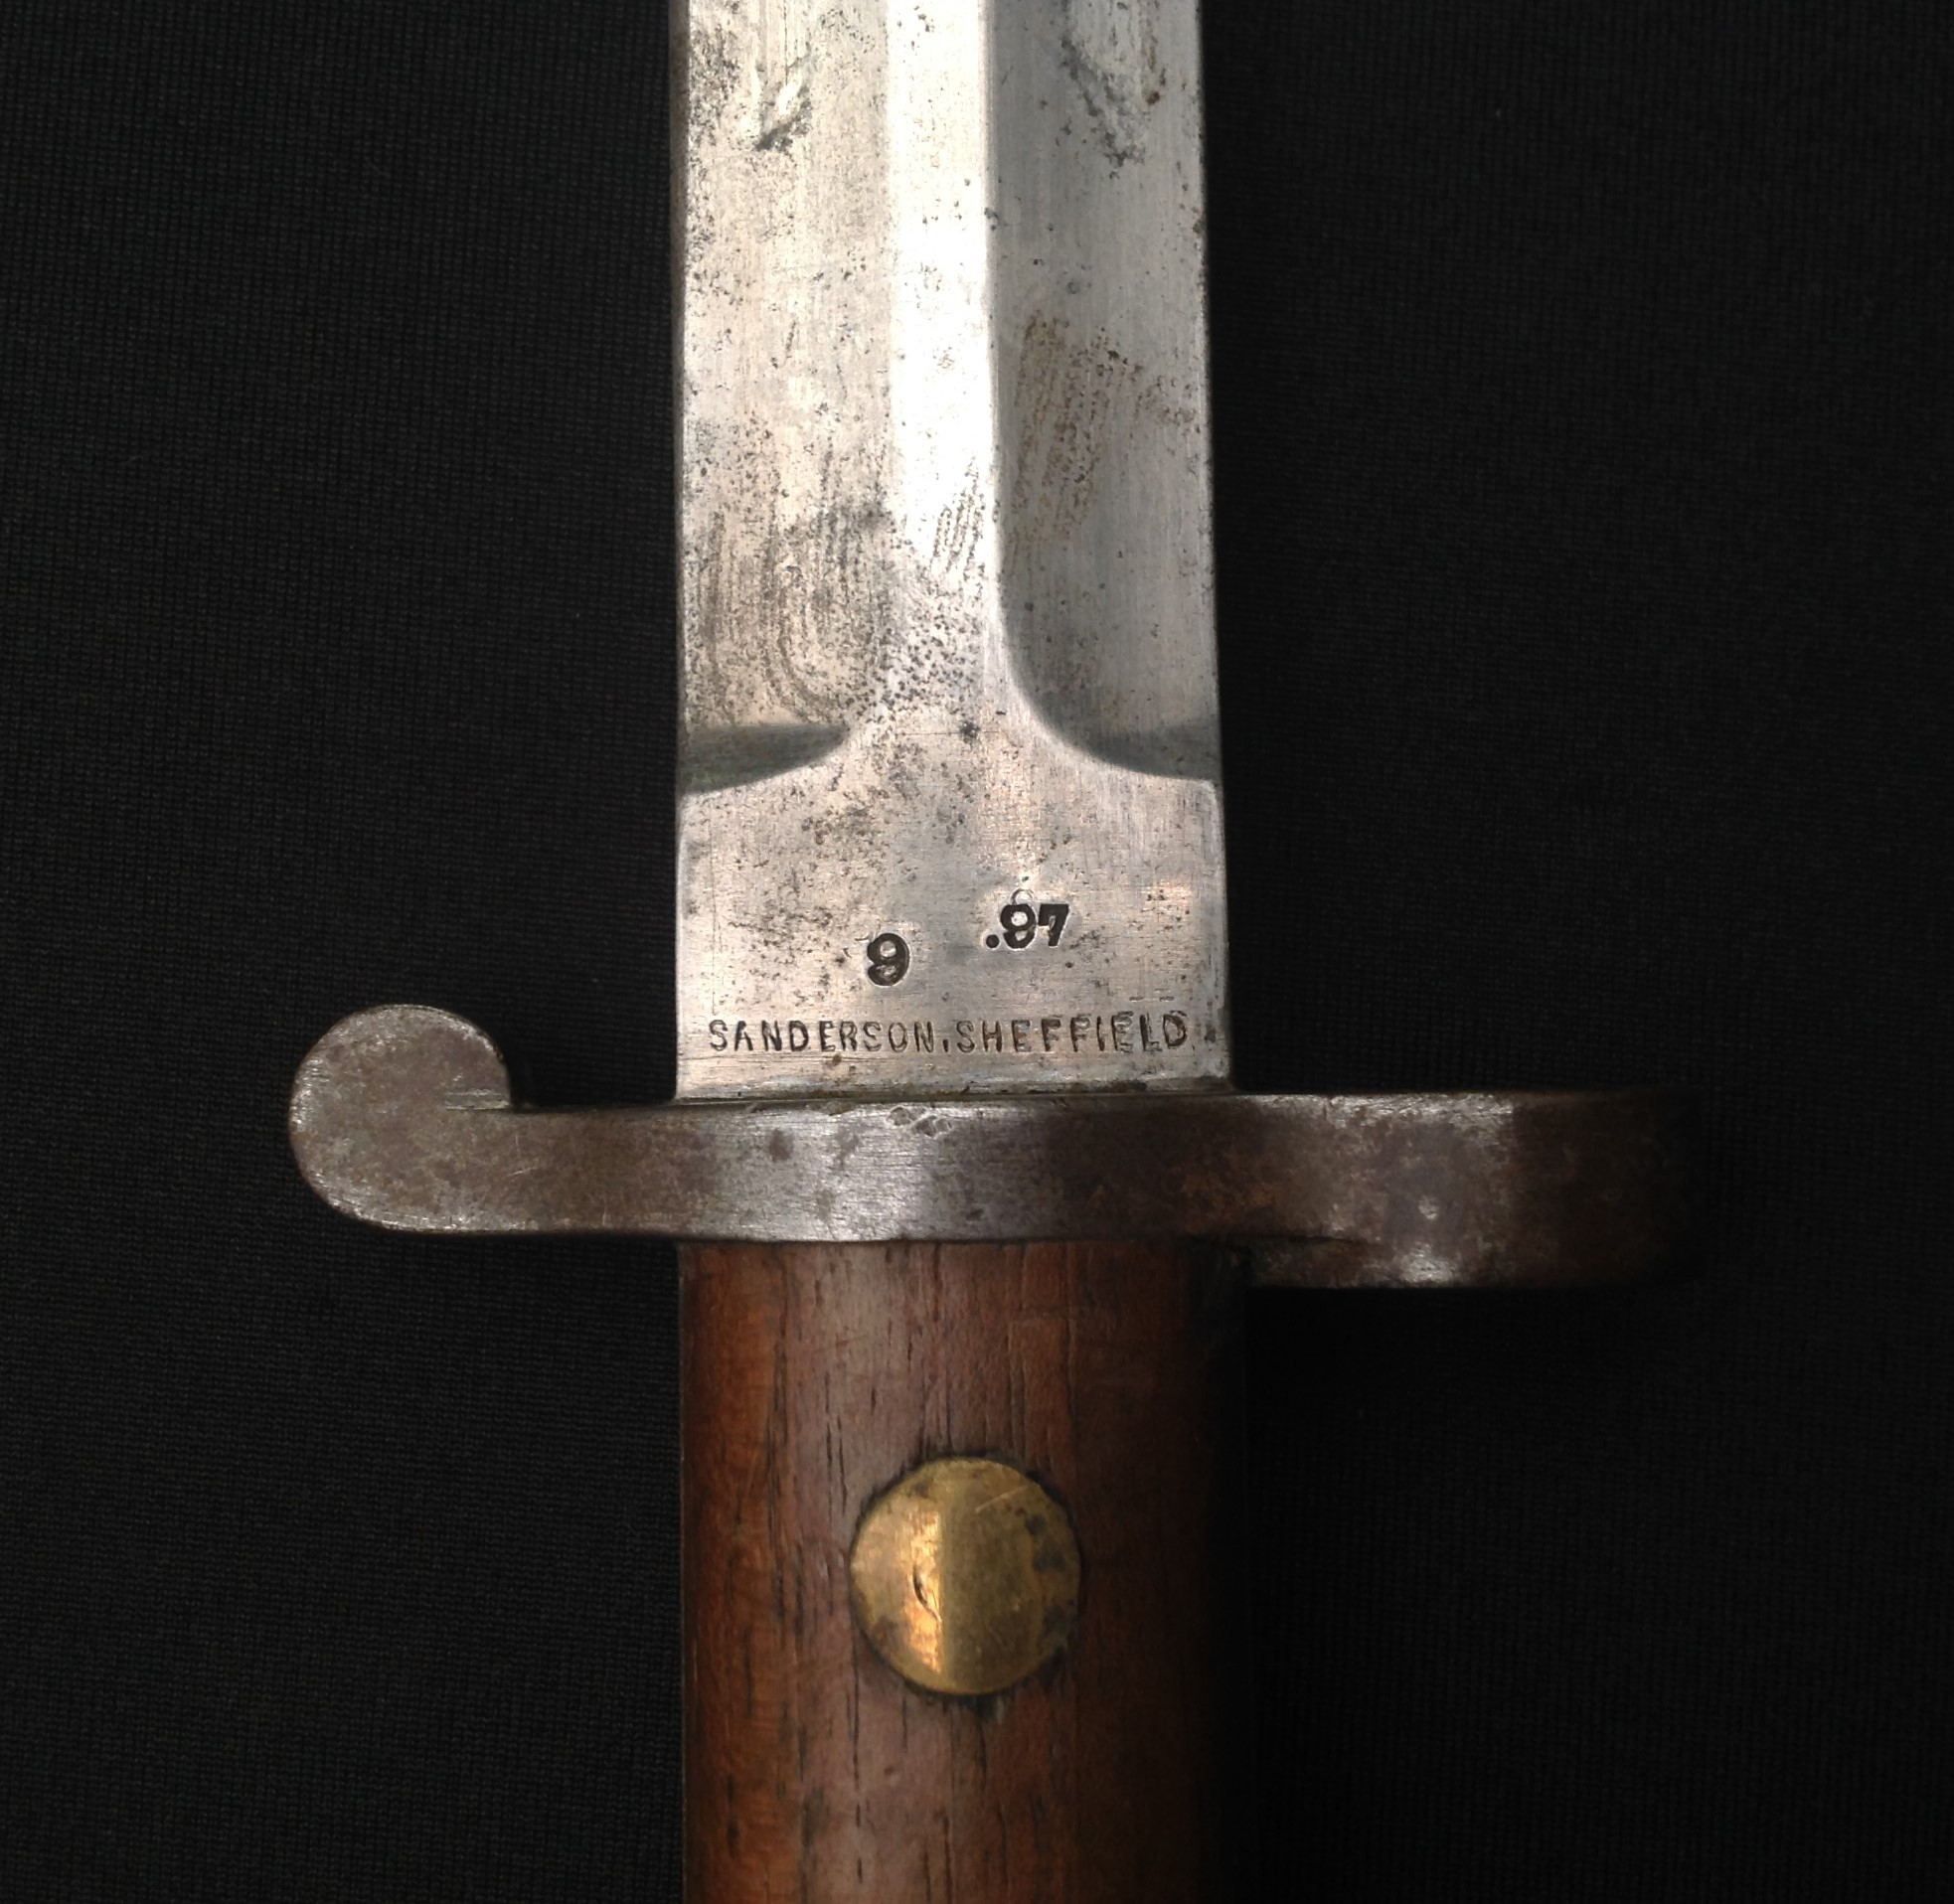 British 1888 pattern bayonet for Long Lee Enfield and Long Lee Metford rifles, 30cm blade by - Image 7 of 11